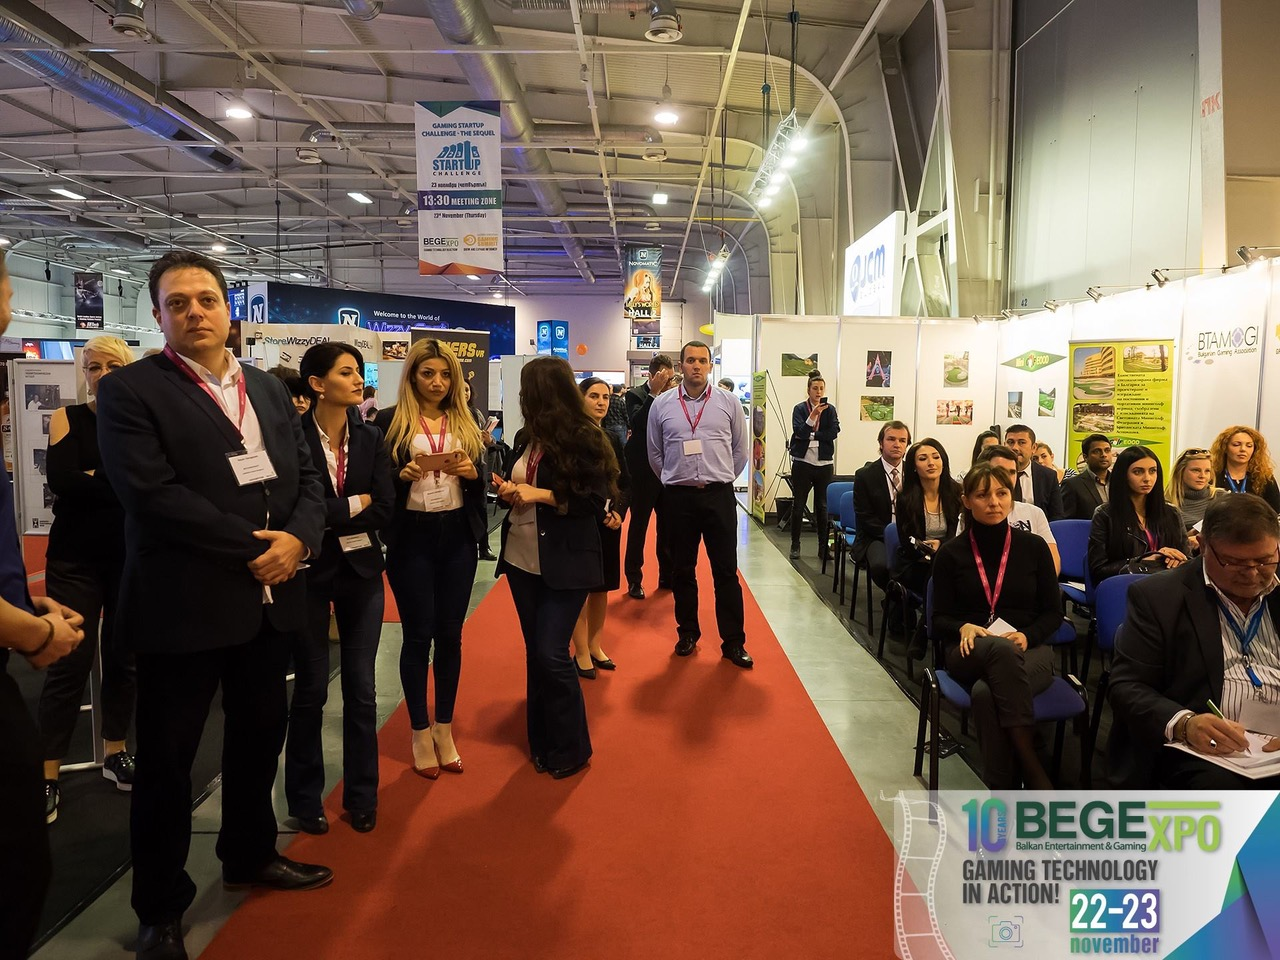 Another look at BEGE Expo 2017